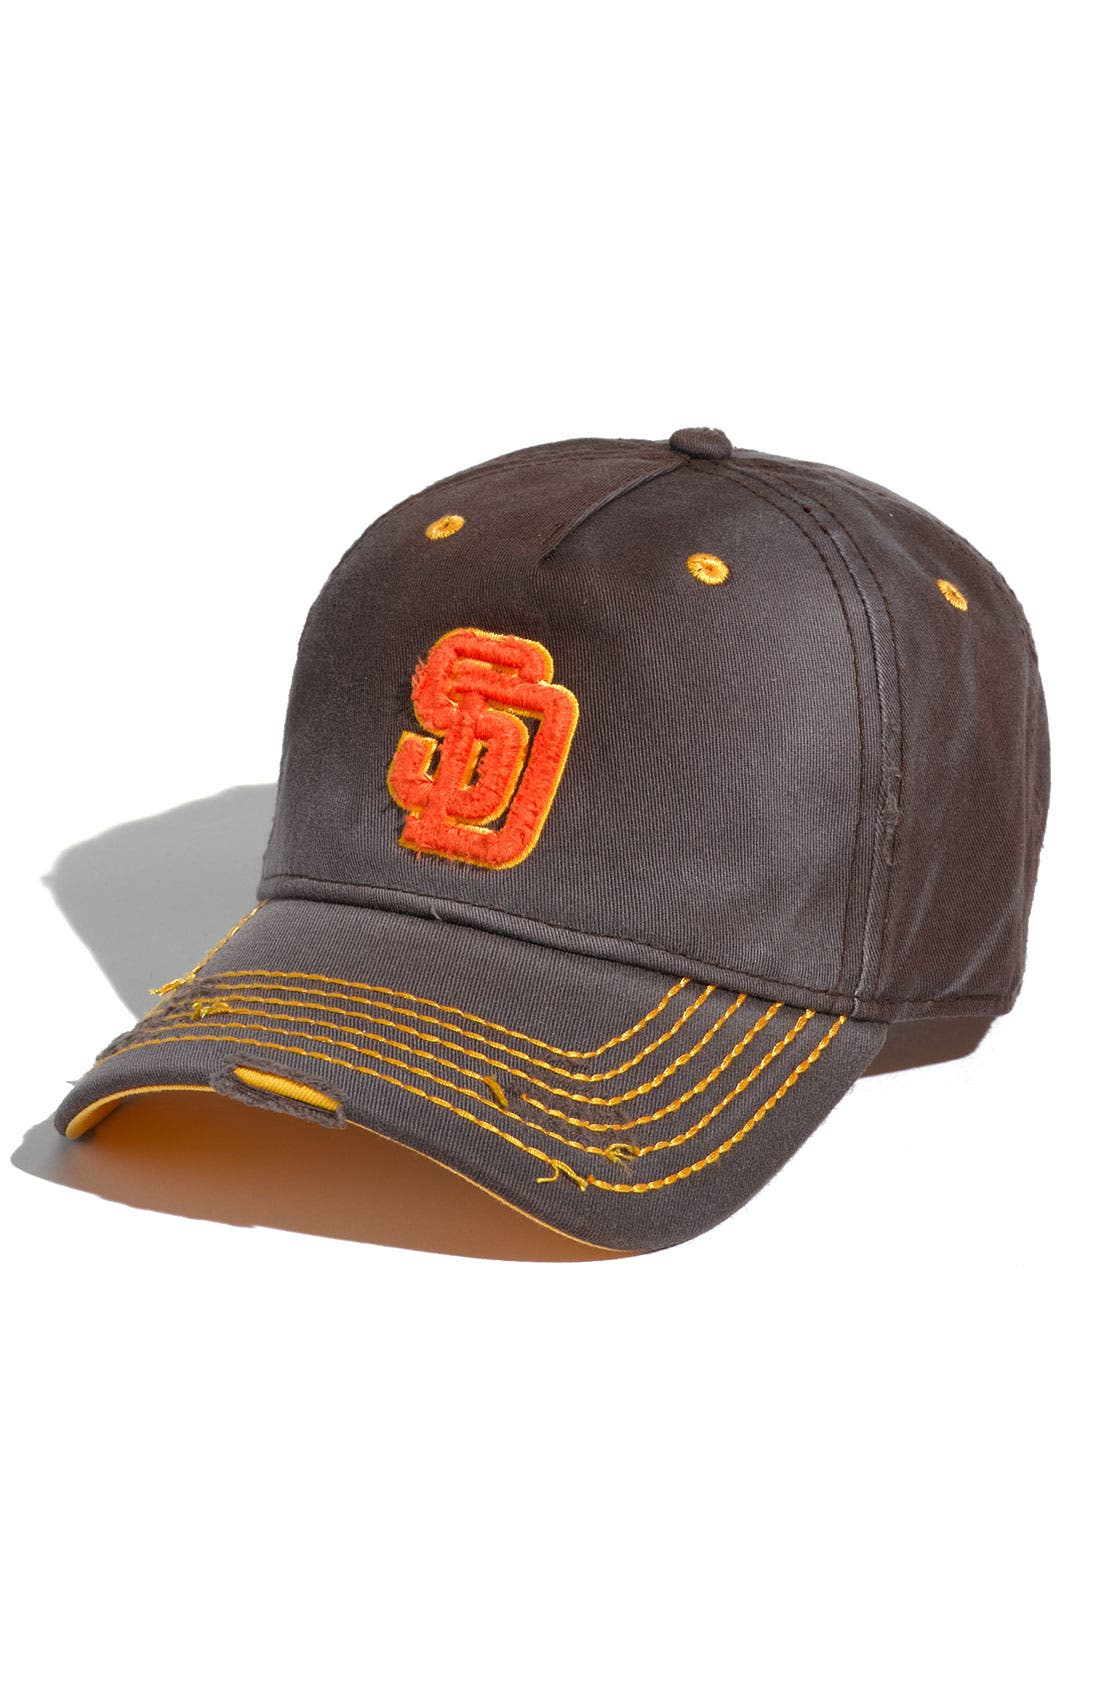 Alternate Image 1 Selected - American Needle 'San Diego Padres' Distressed Cap